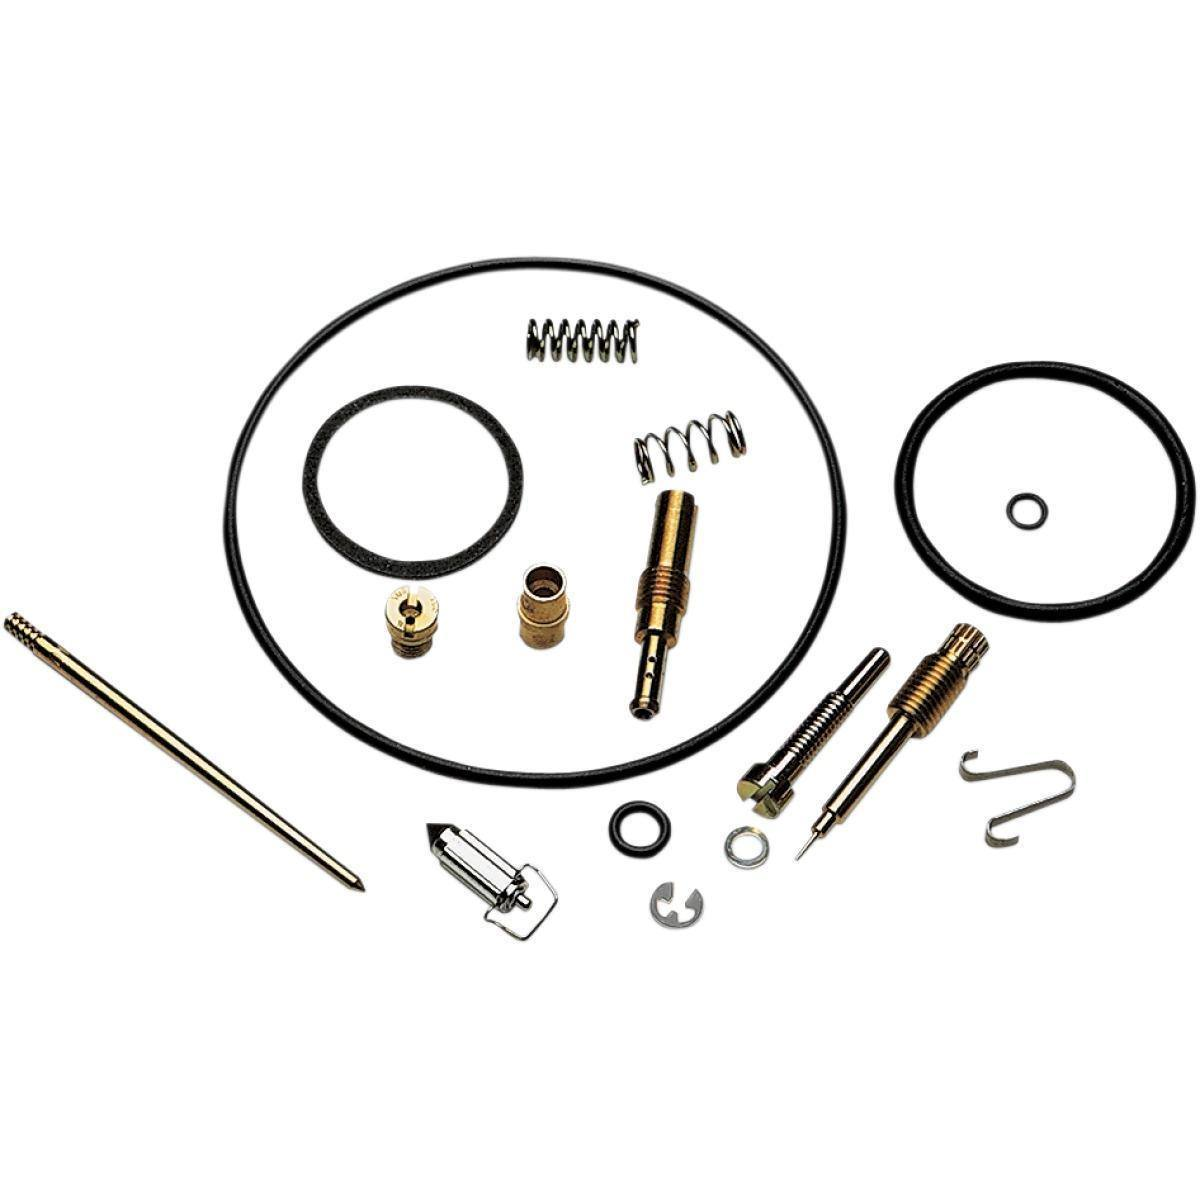 Carburetor rebuild kit for sale in pottsville pa matto cycle 570 429 0678